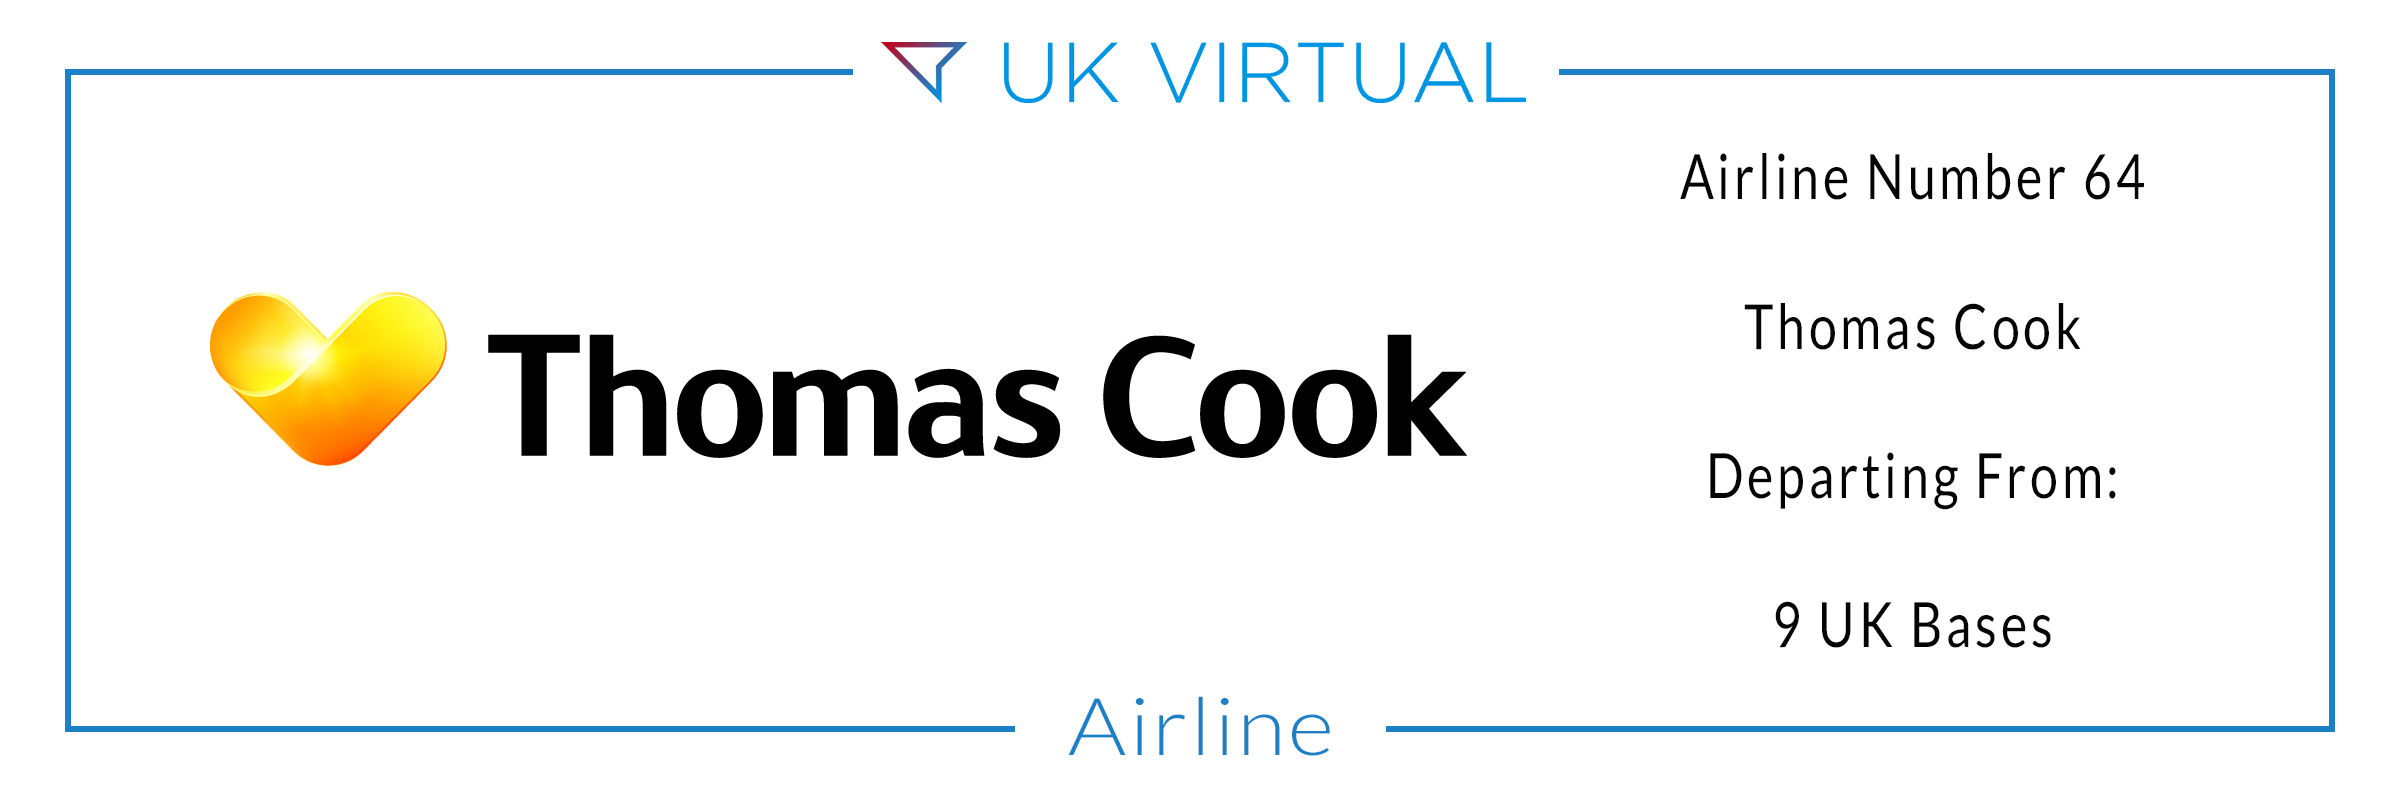 Airline Number 64: Thomas Cook